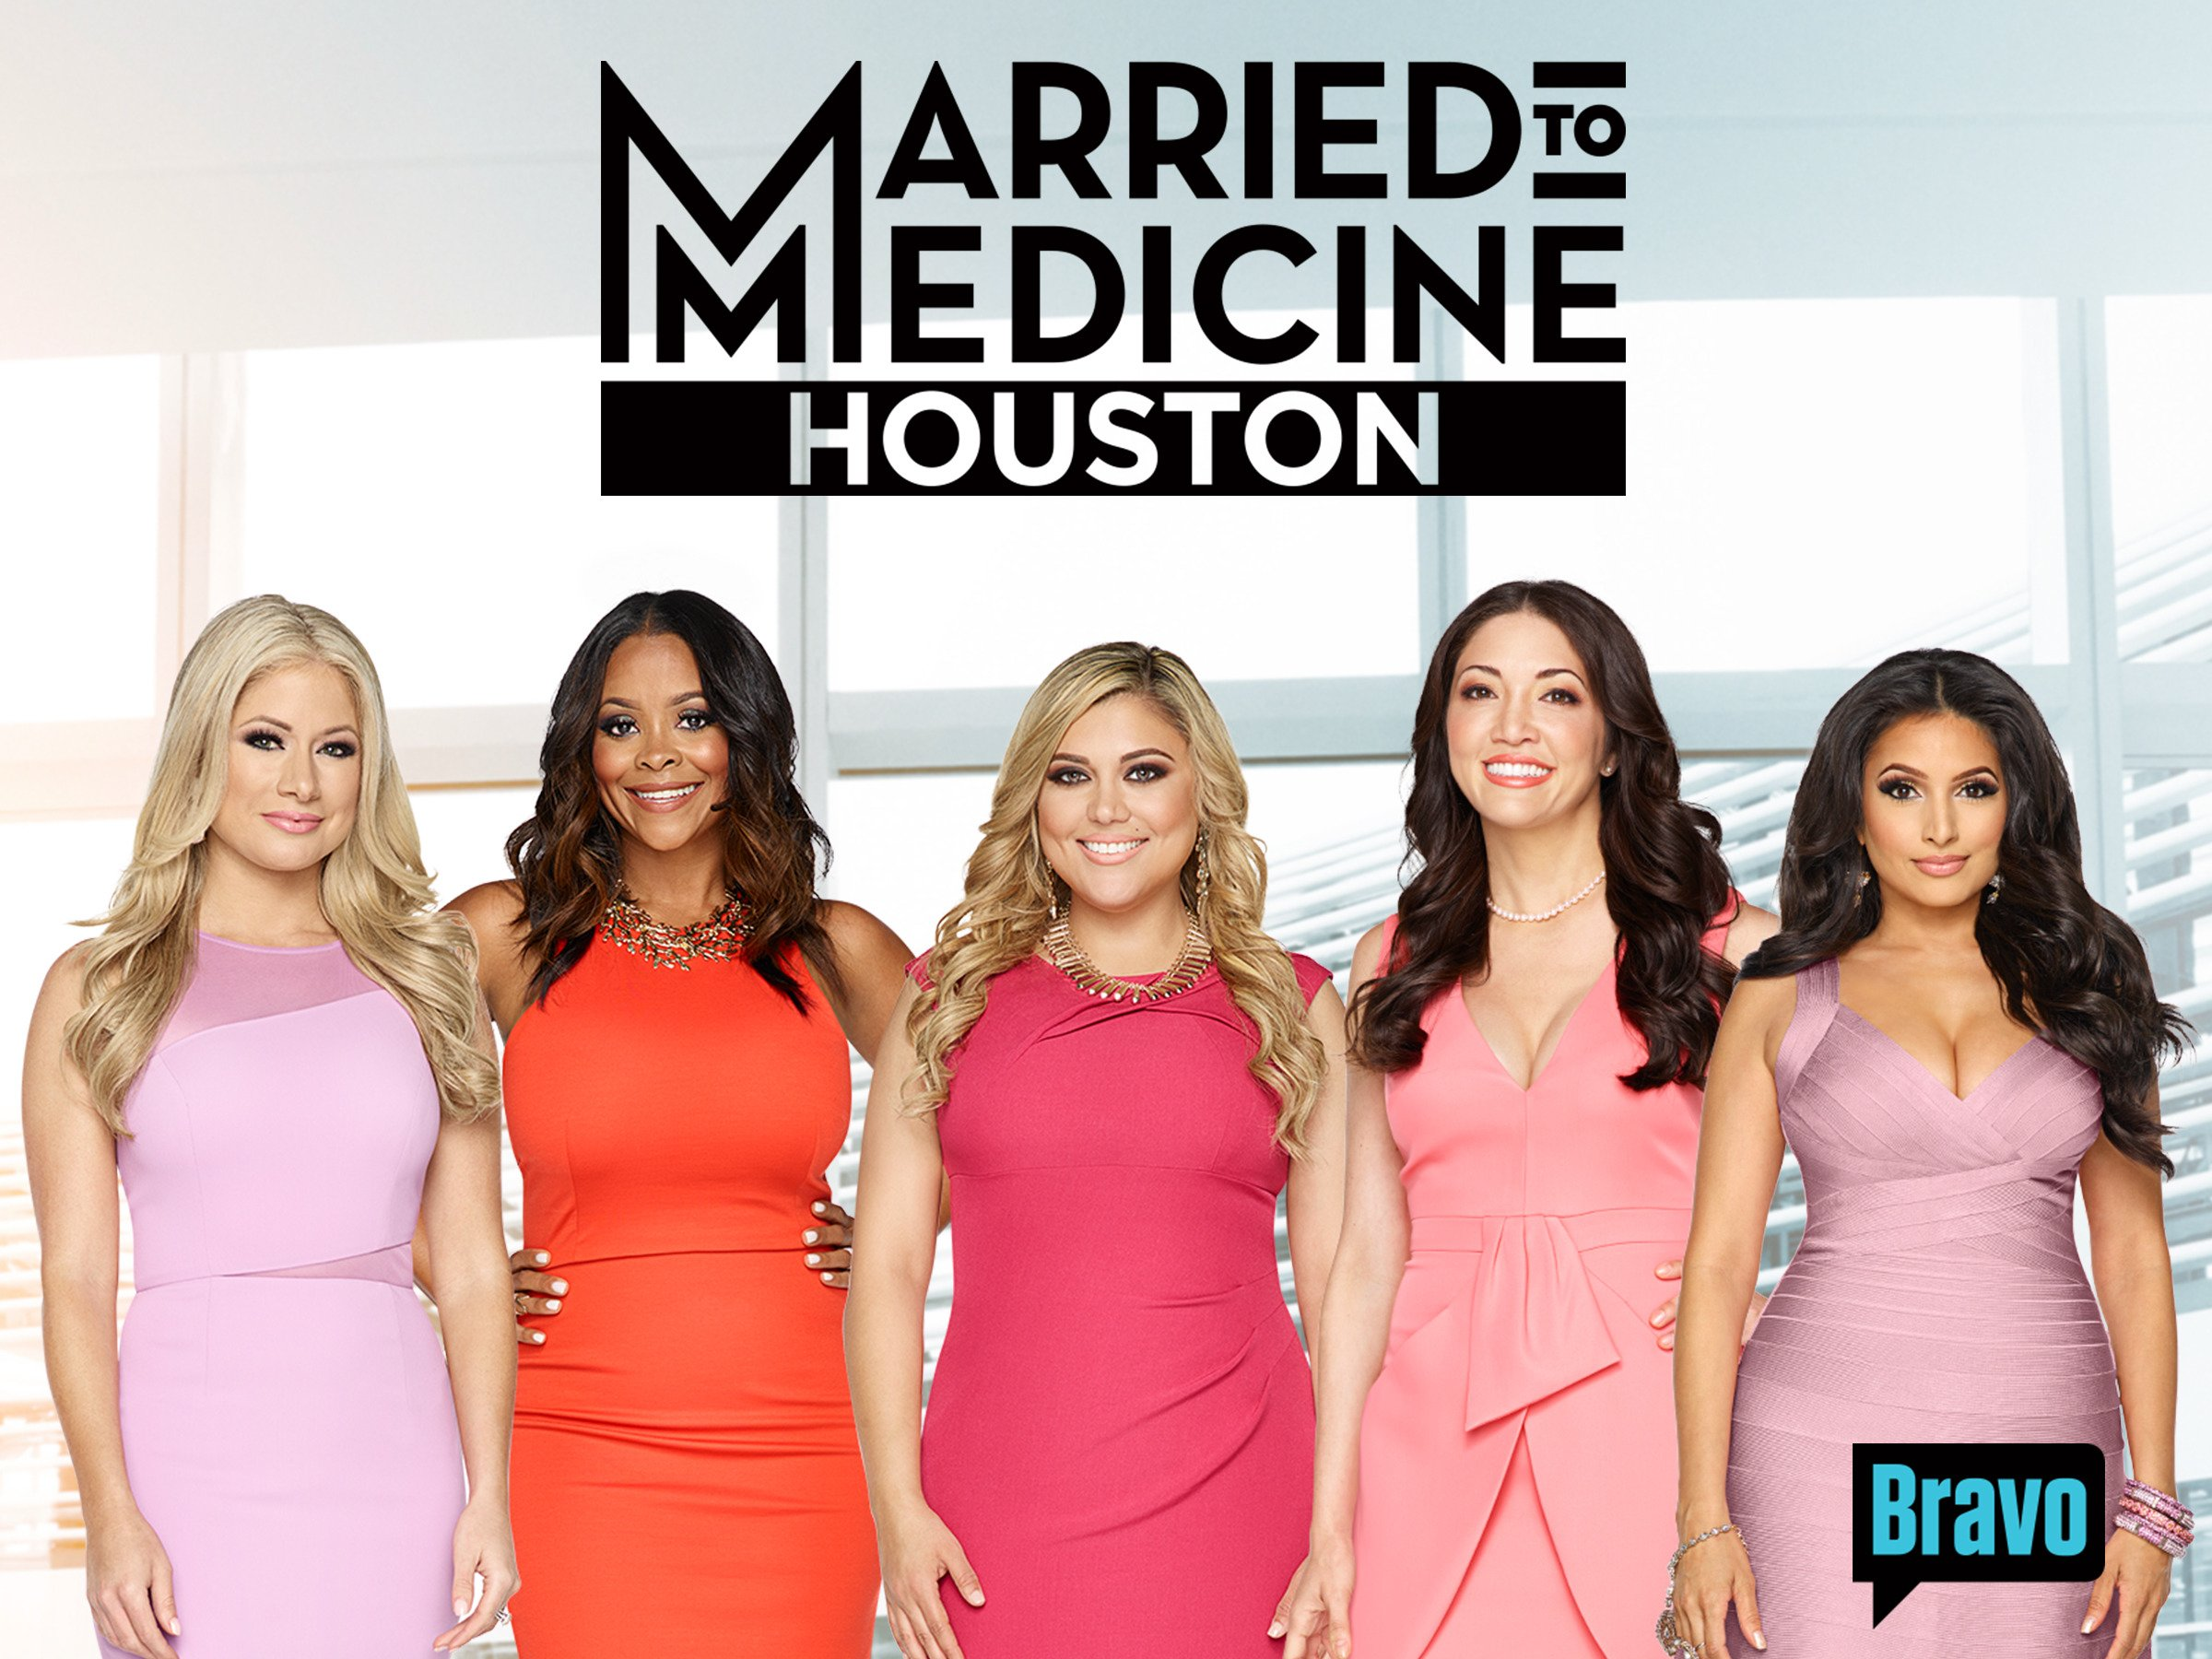 Dating houston married 'Married at